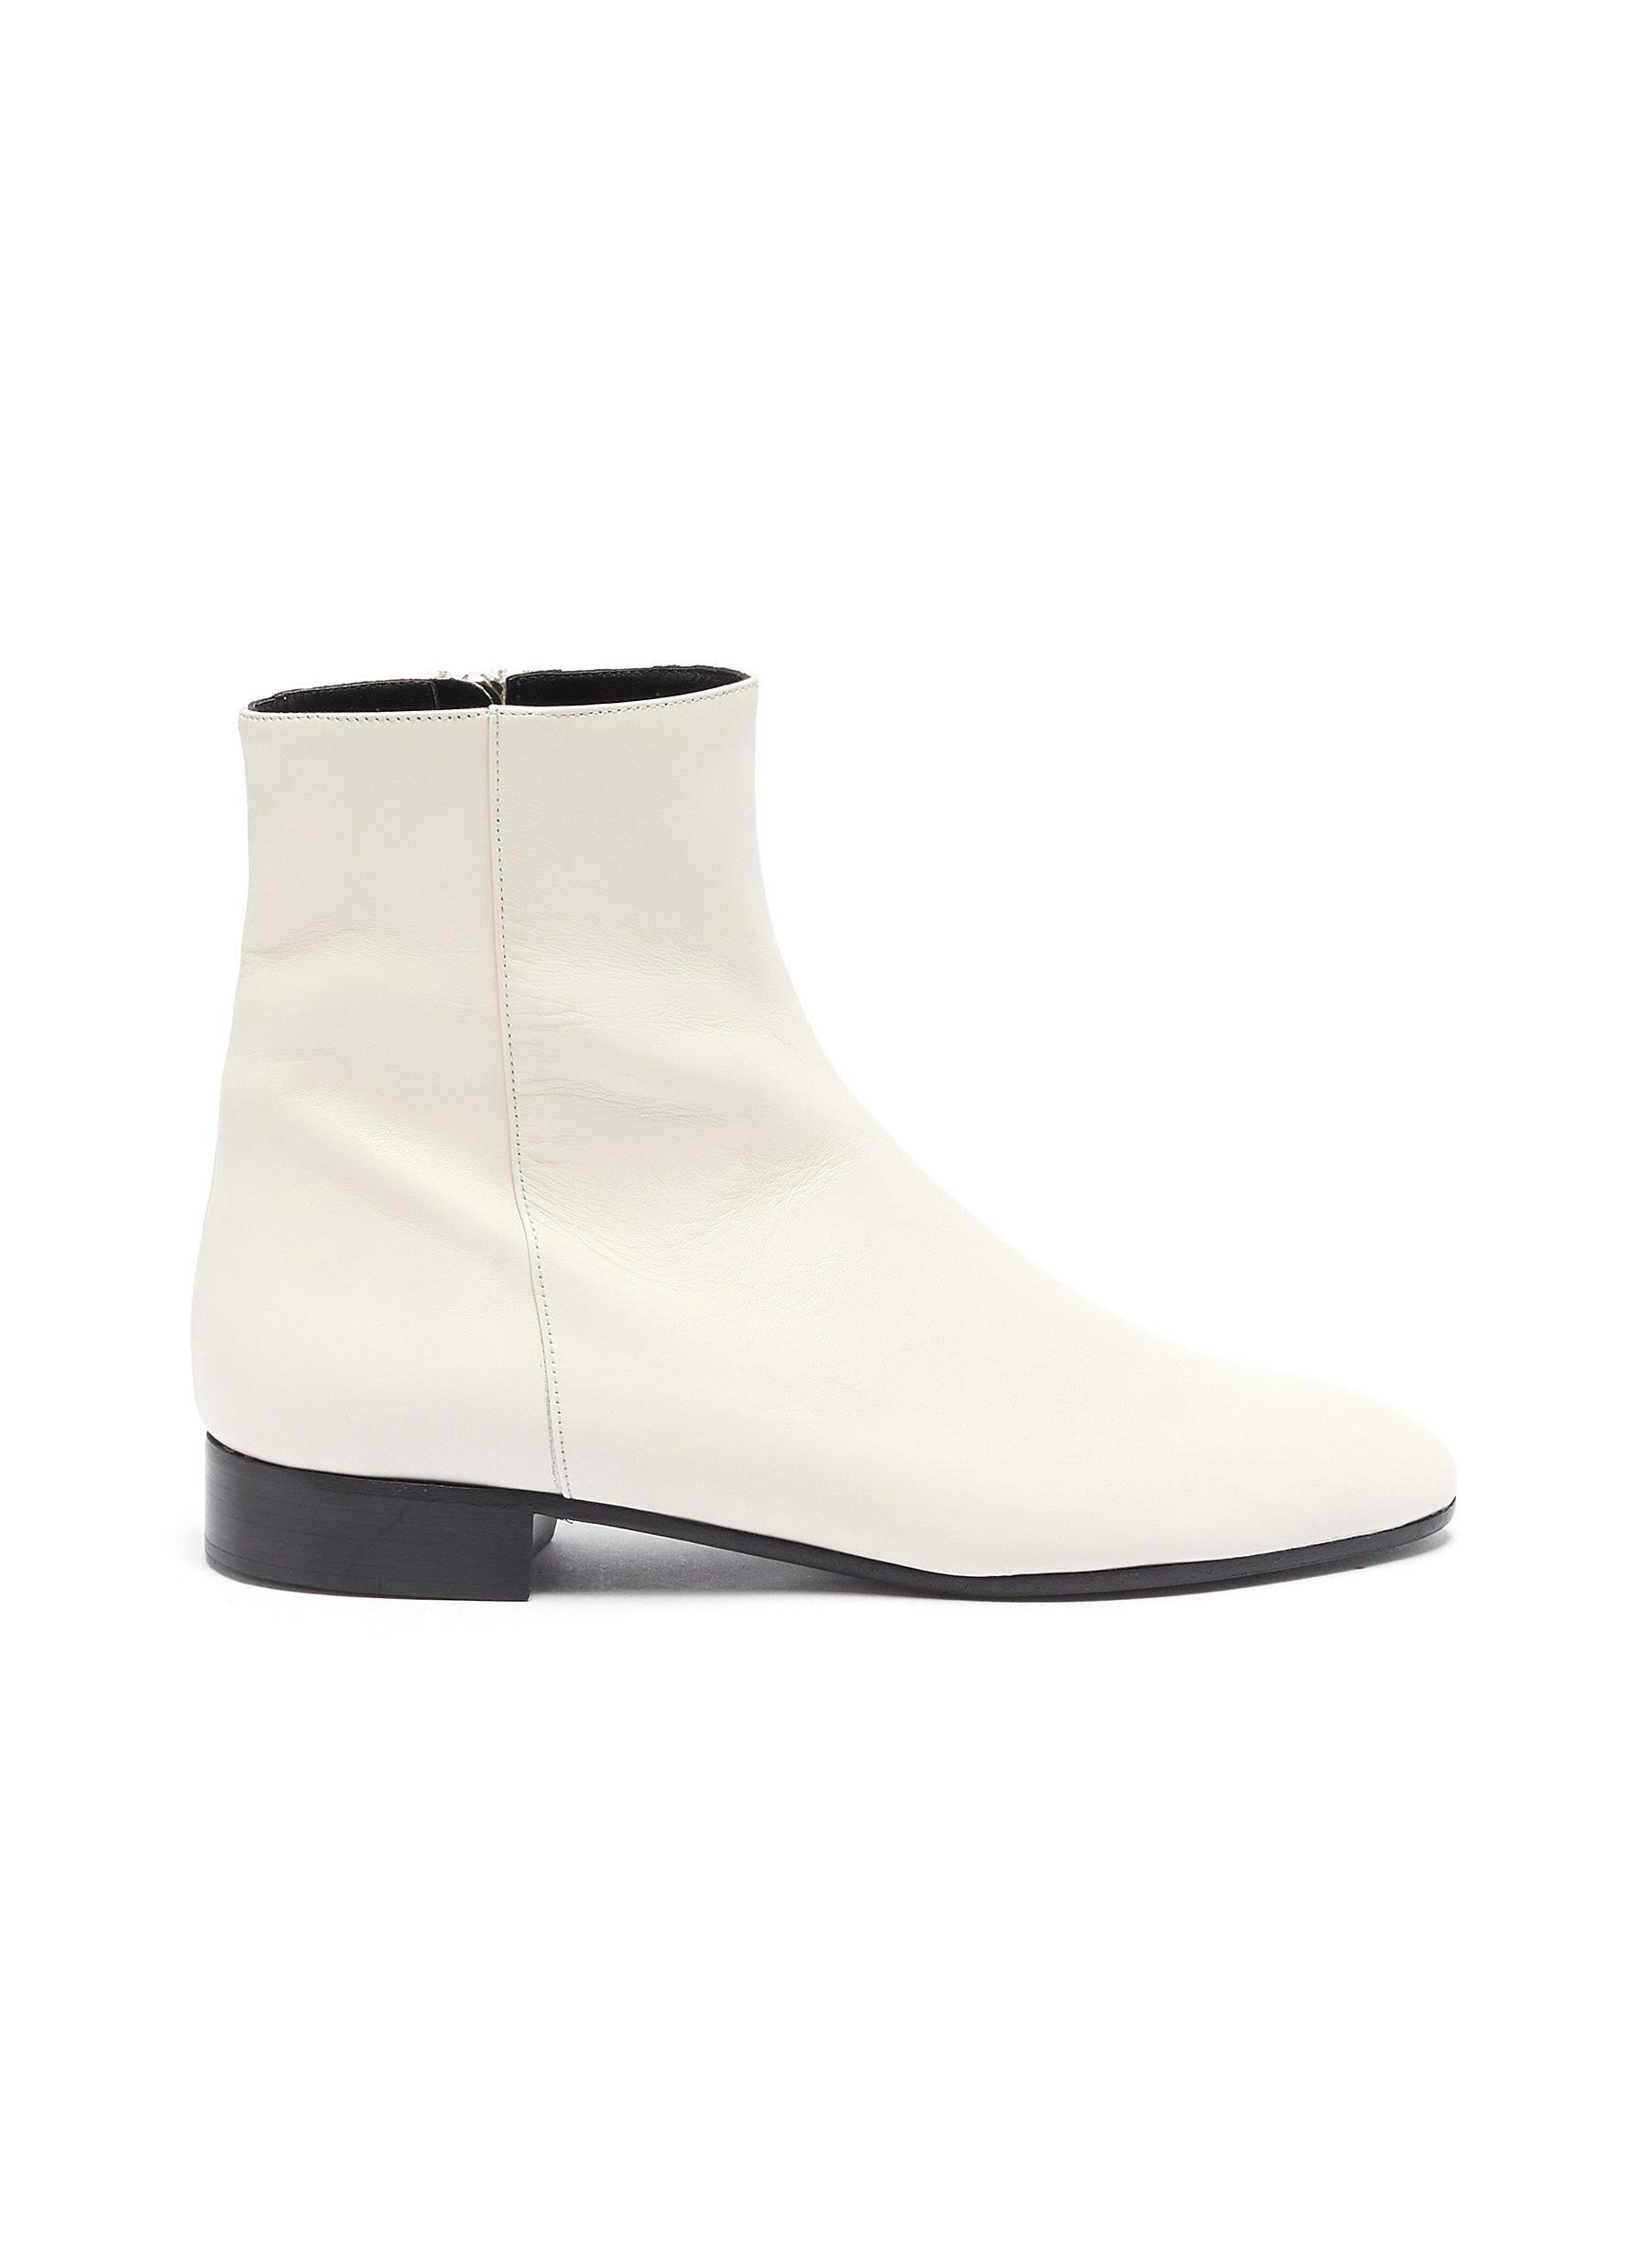 Side seam leather ankle boots by Alumnae